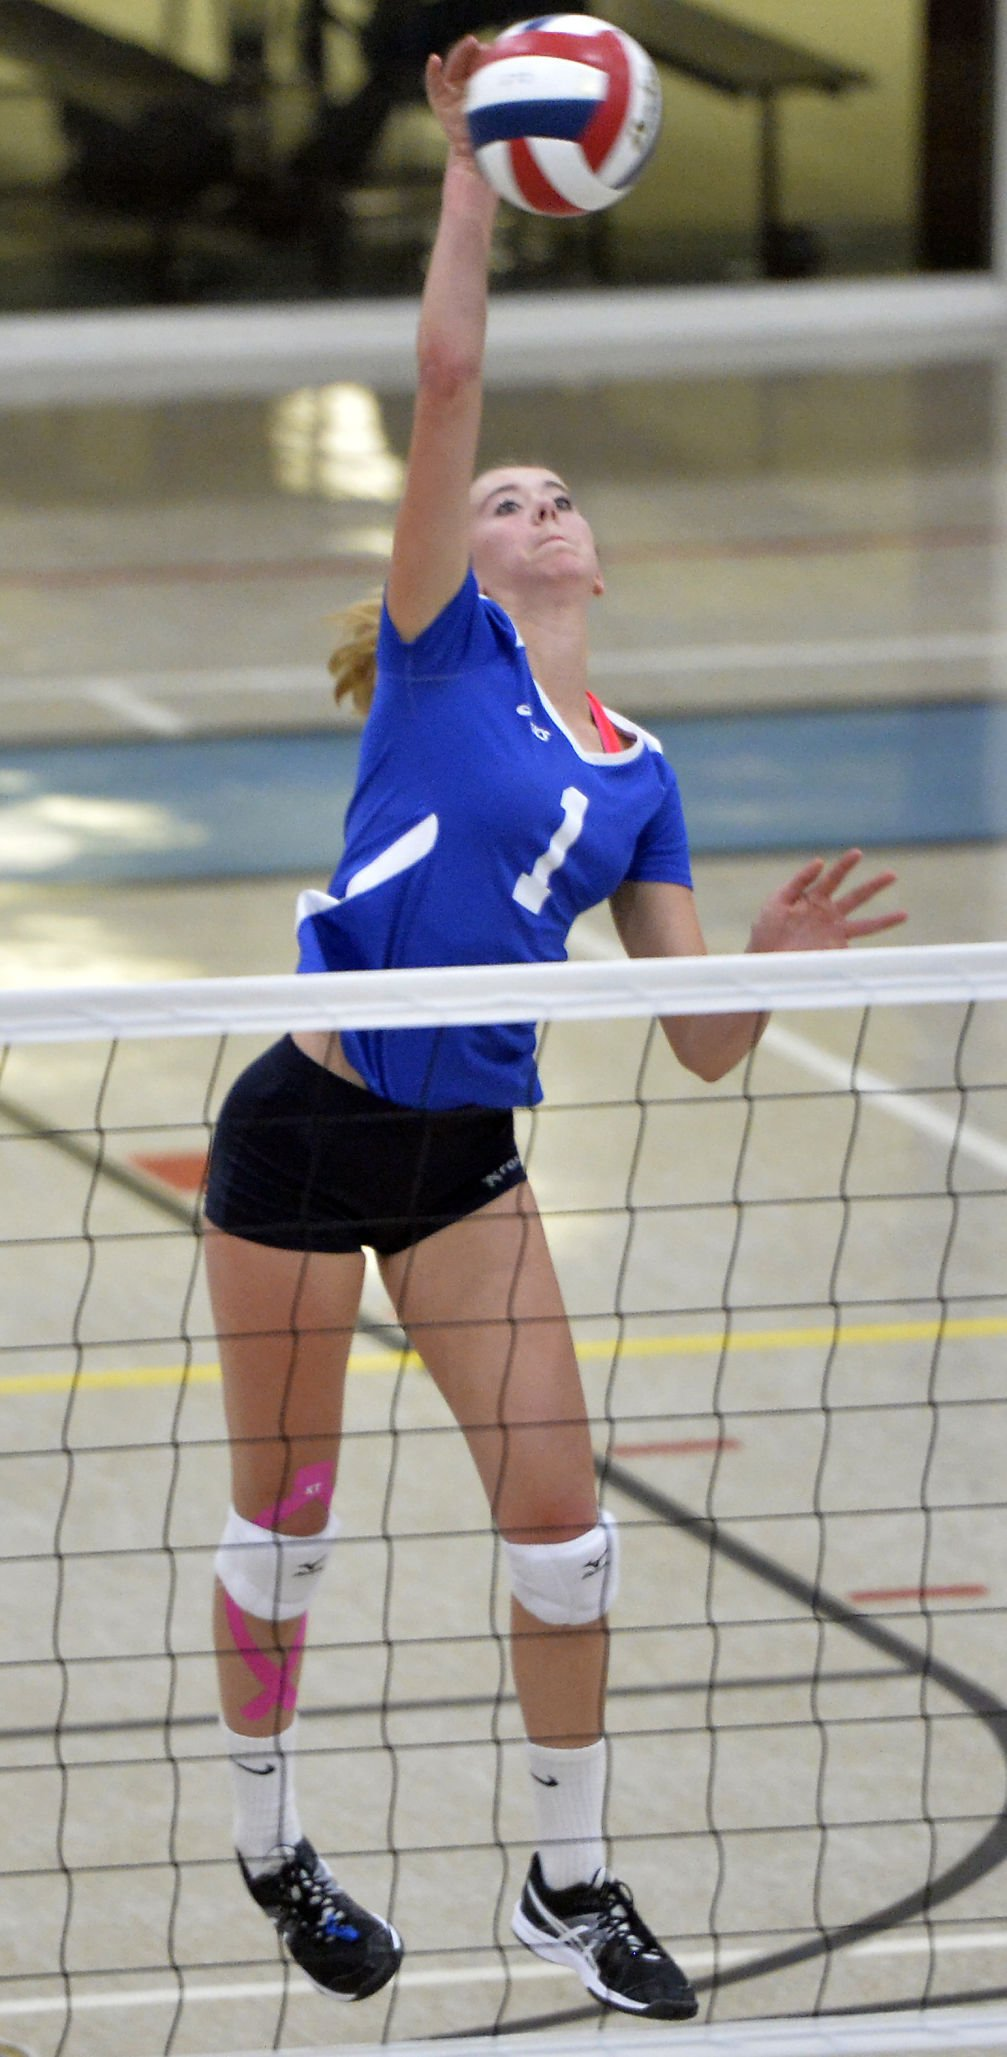 naked country girl volleyball